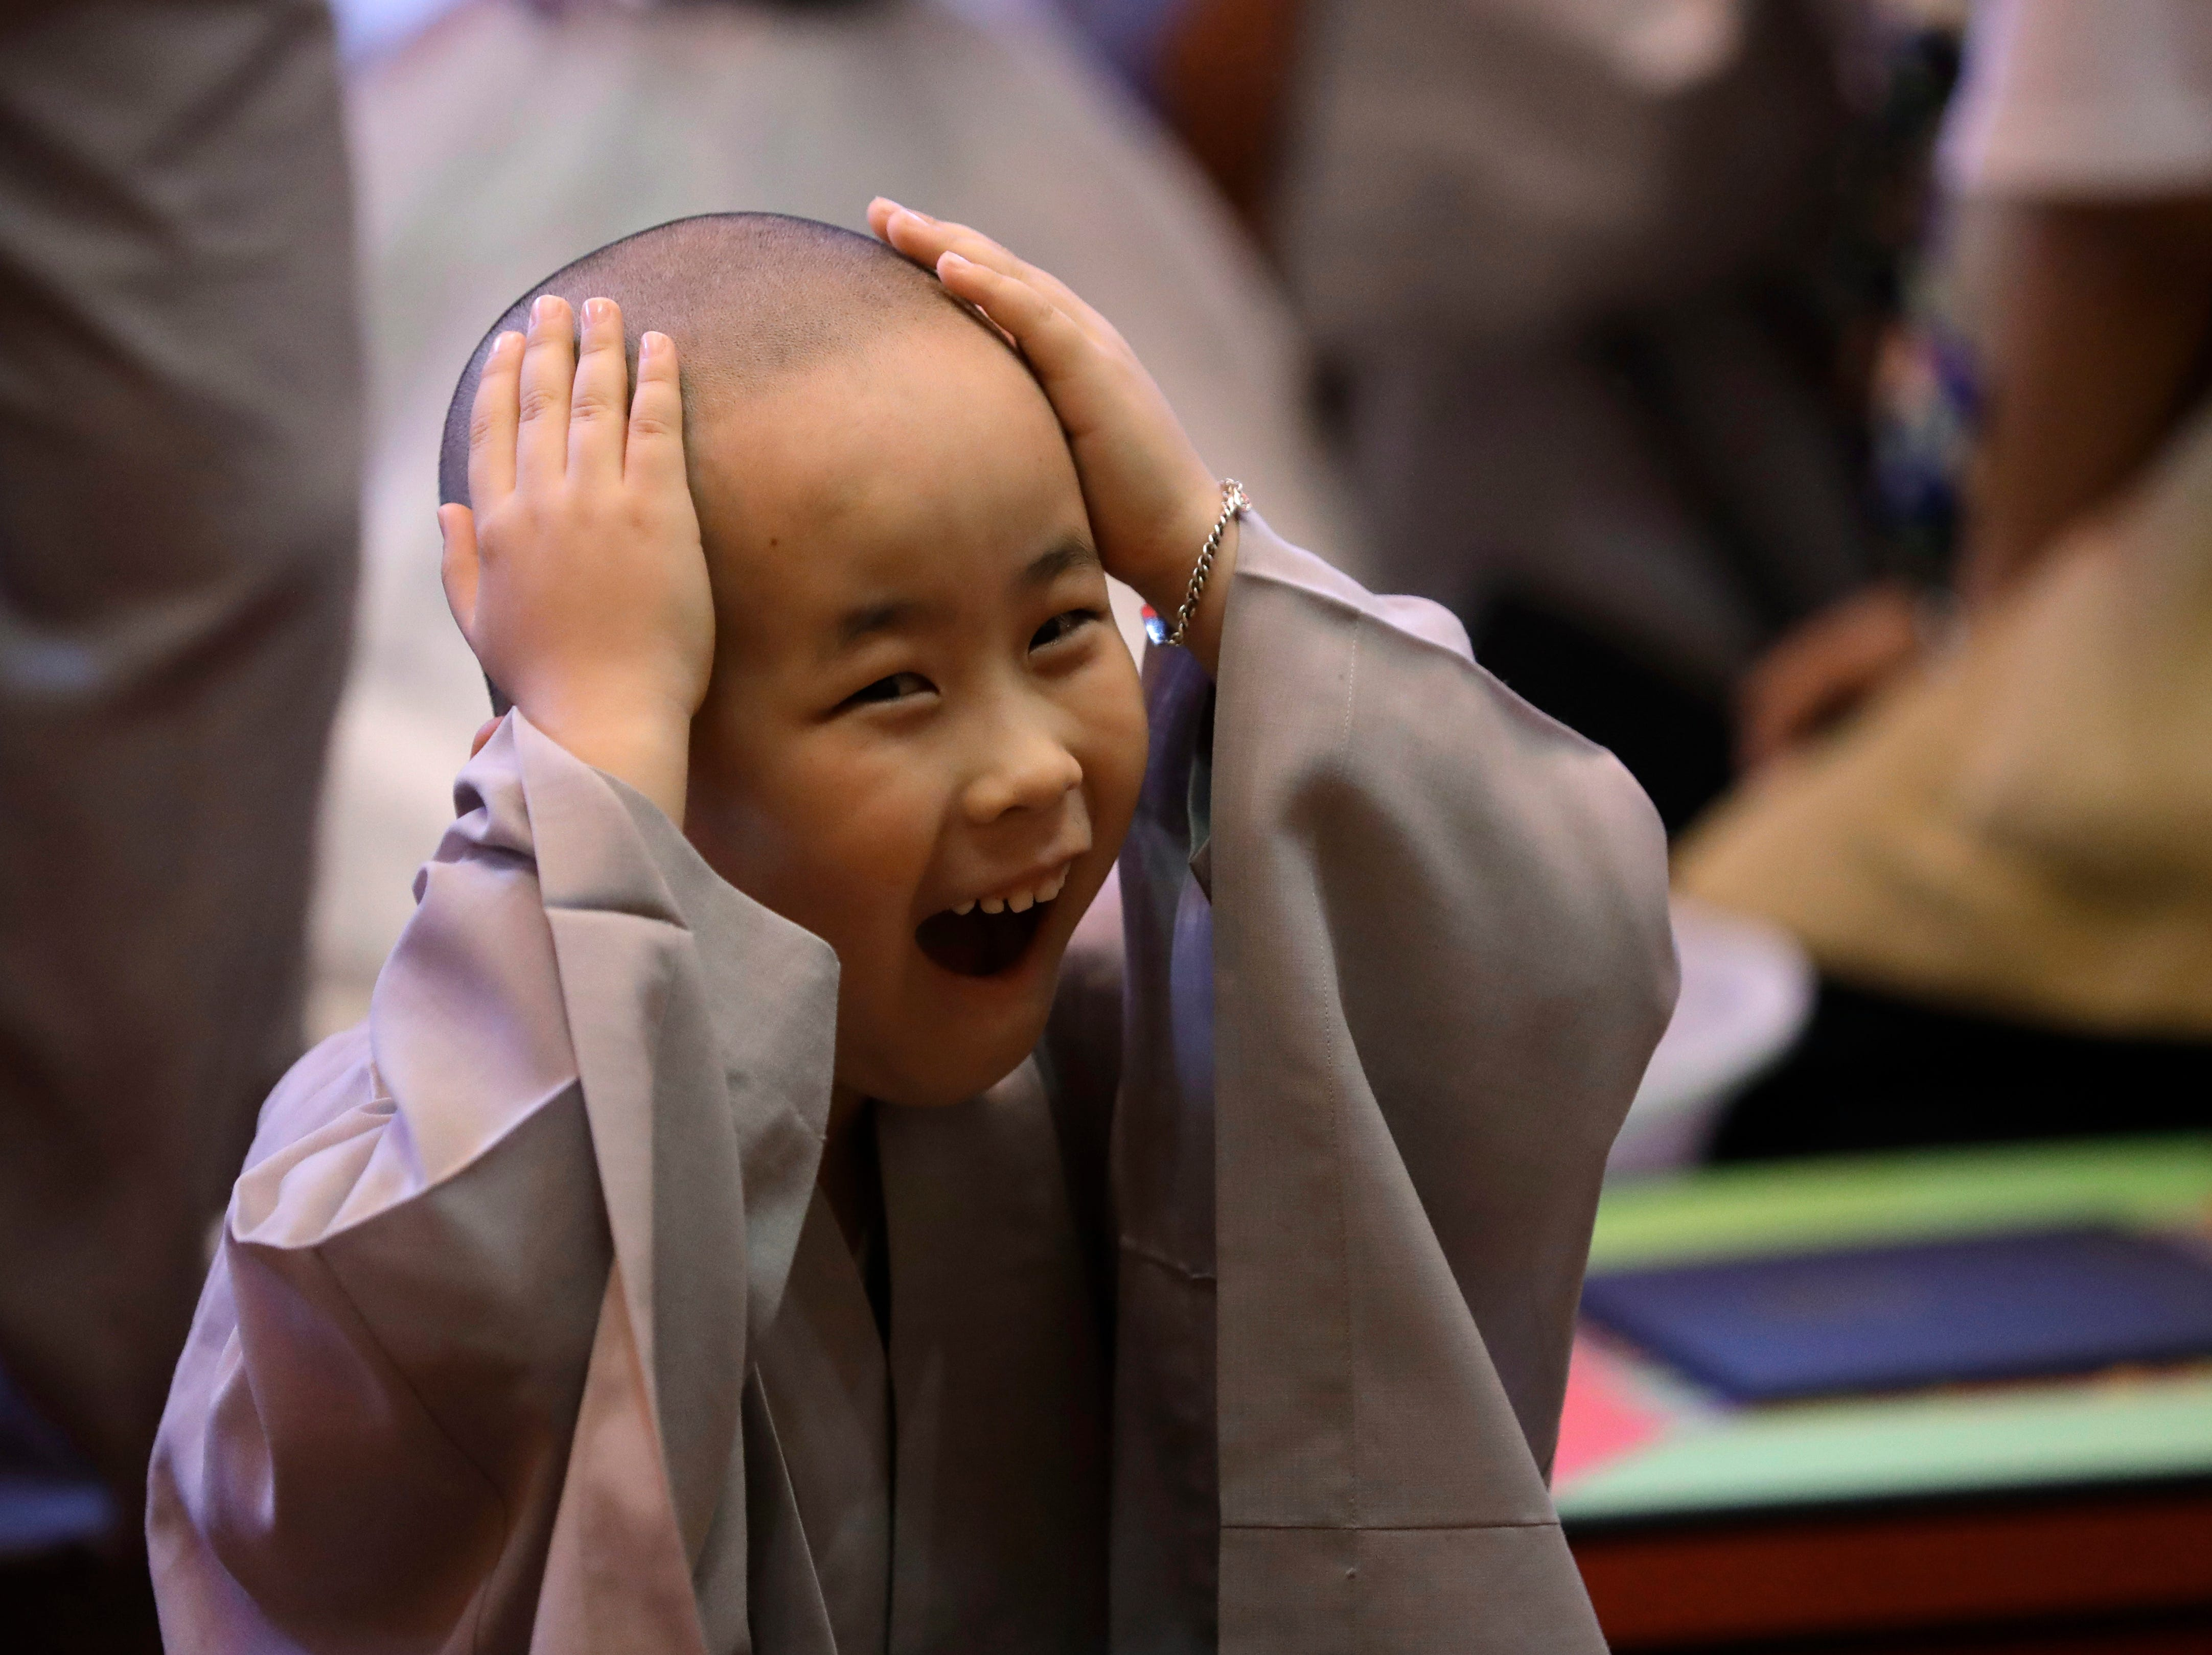 May 2, 2018: A boy, whose Buddhist name is Da Sun, touches his newly shaved head during a service to have an experience of the lives of Buddhist monks, at the Jogye Temple in Seoul, South Korea.